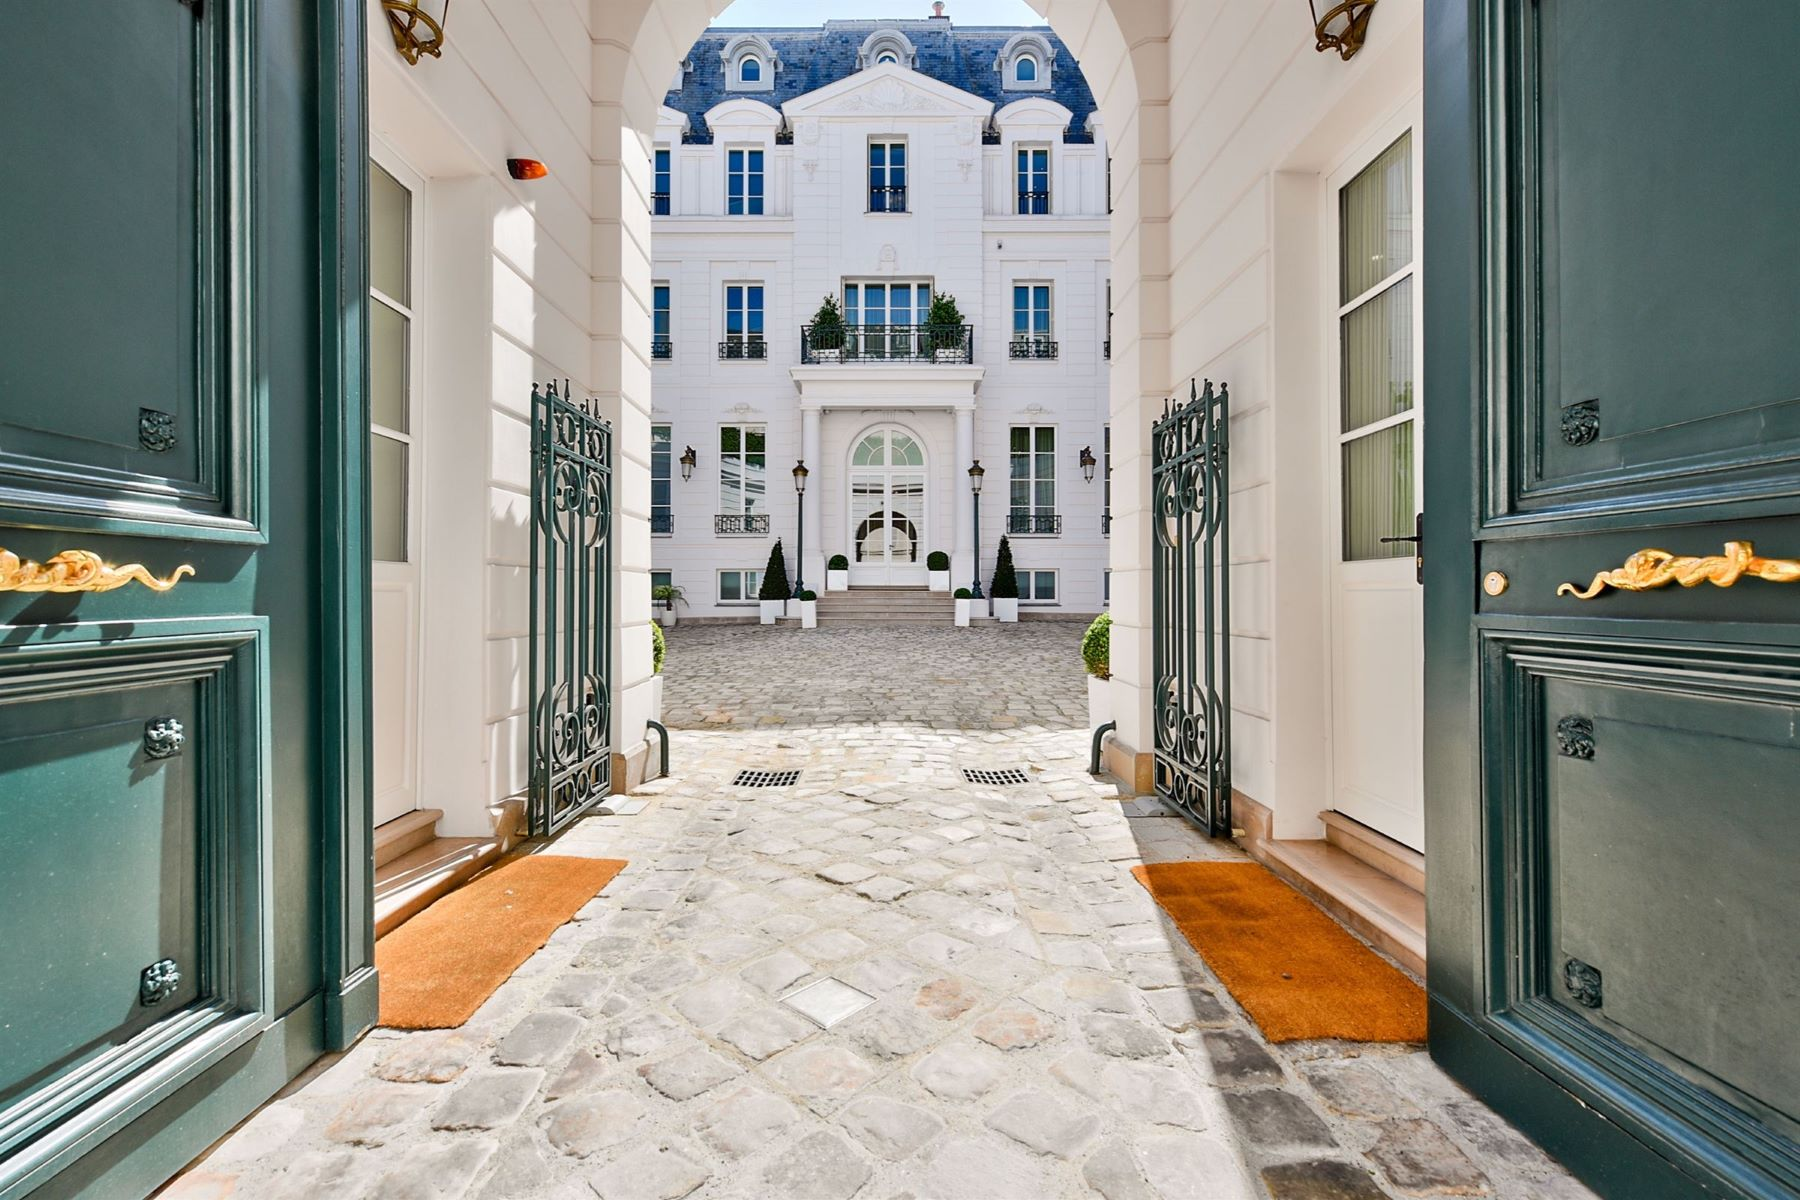 Single Family Homes for Sale at Boulevard St Germain : a residence with main courtyard and garden Paris, Ile-De-France 75007 France